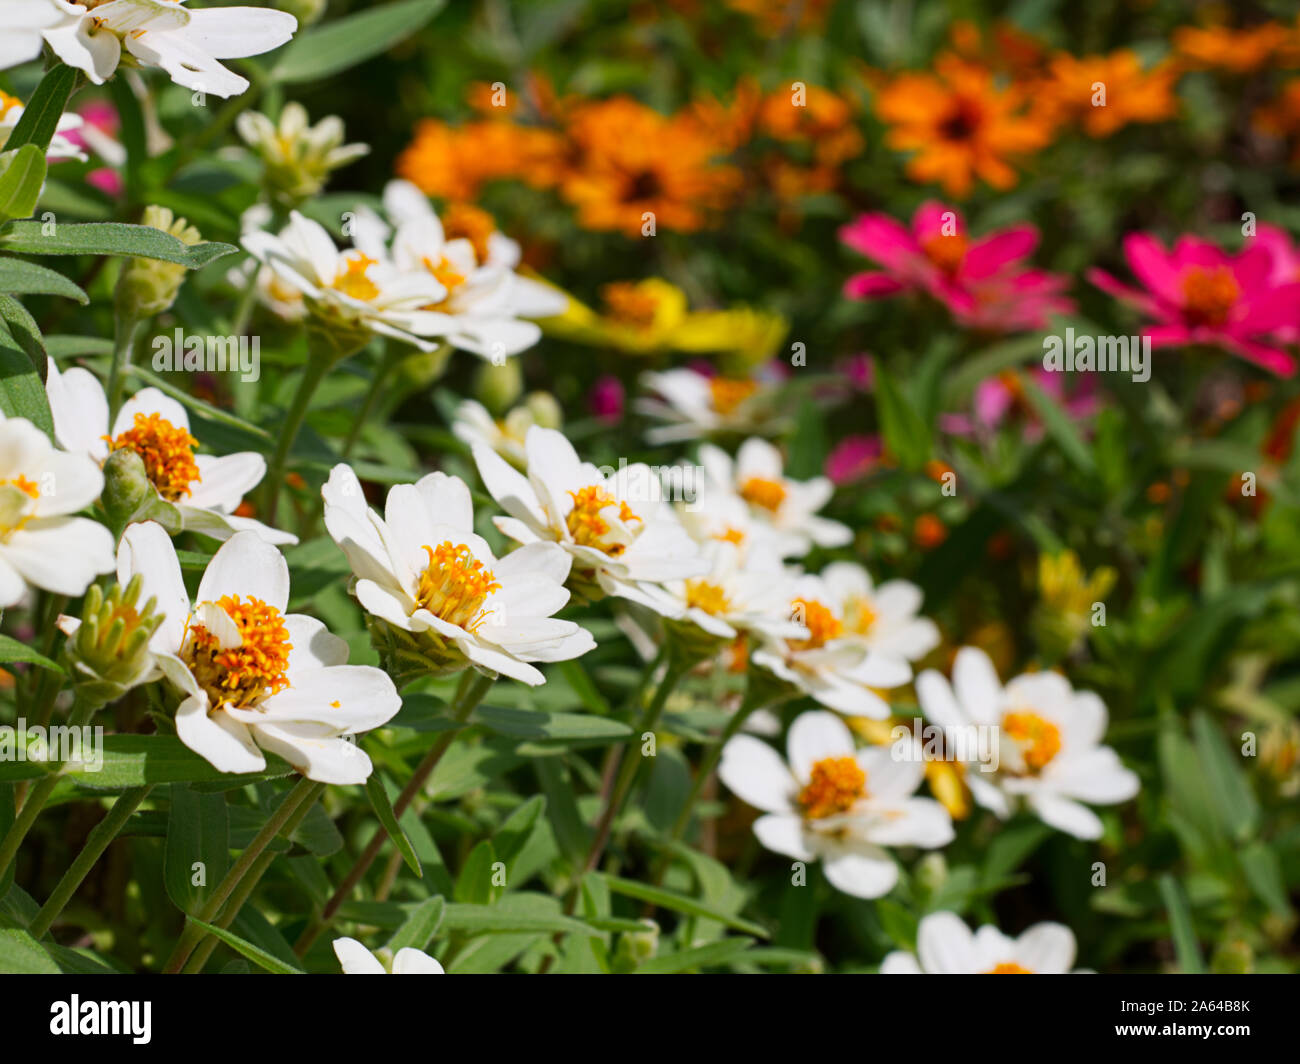 Fall Landscaping Ideas Stock Photos Fall Landscaping Ideas Stock